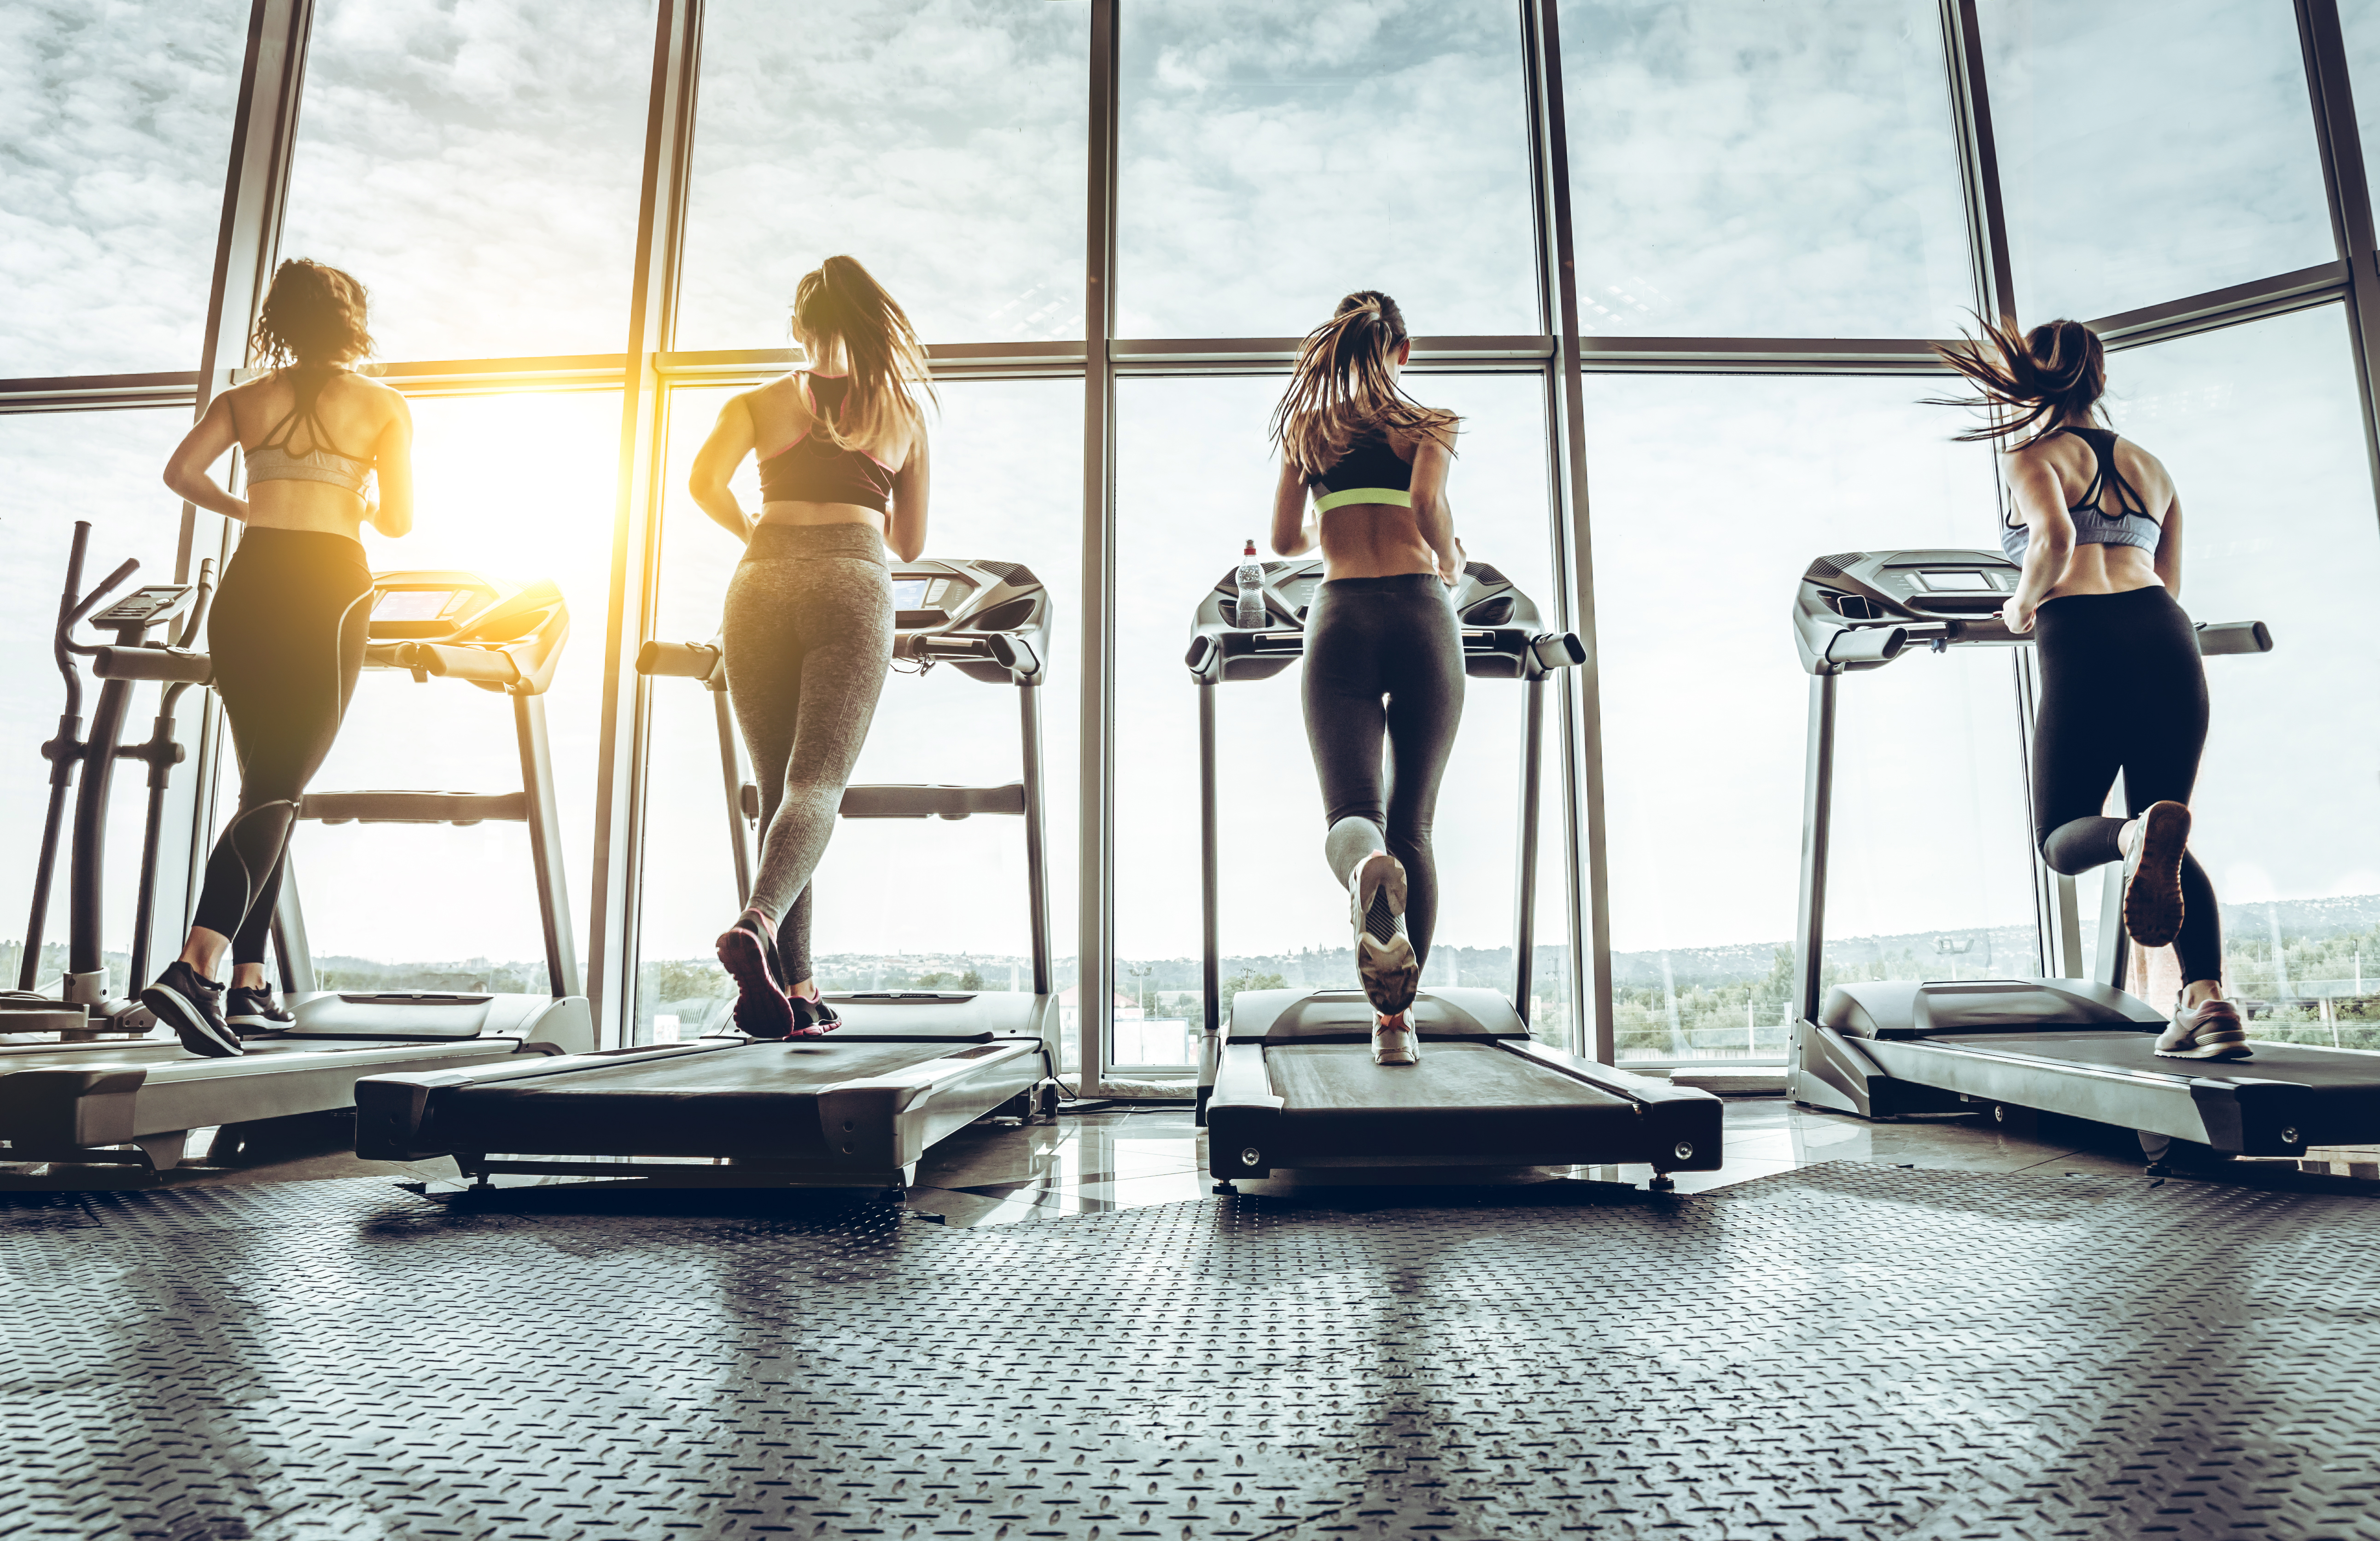 Treadmills work your lower body